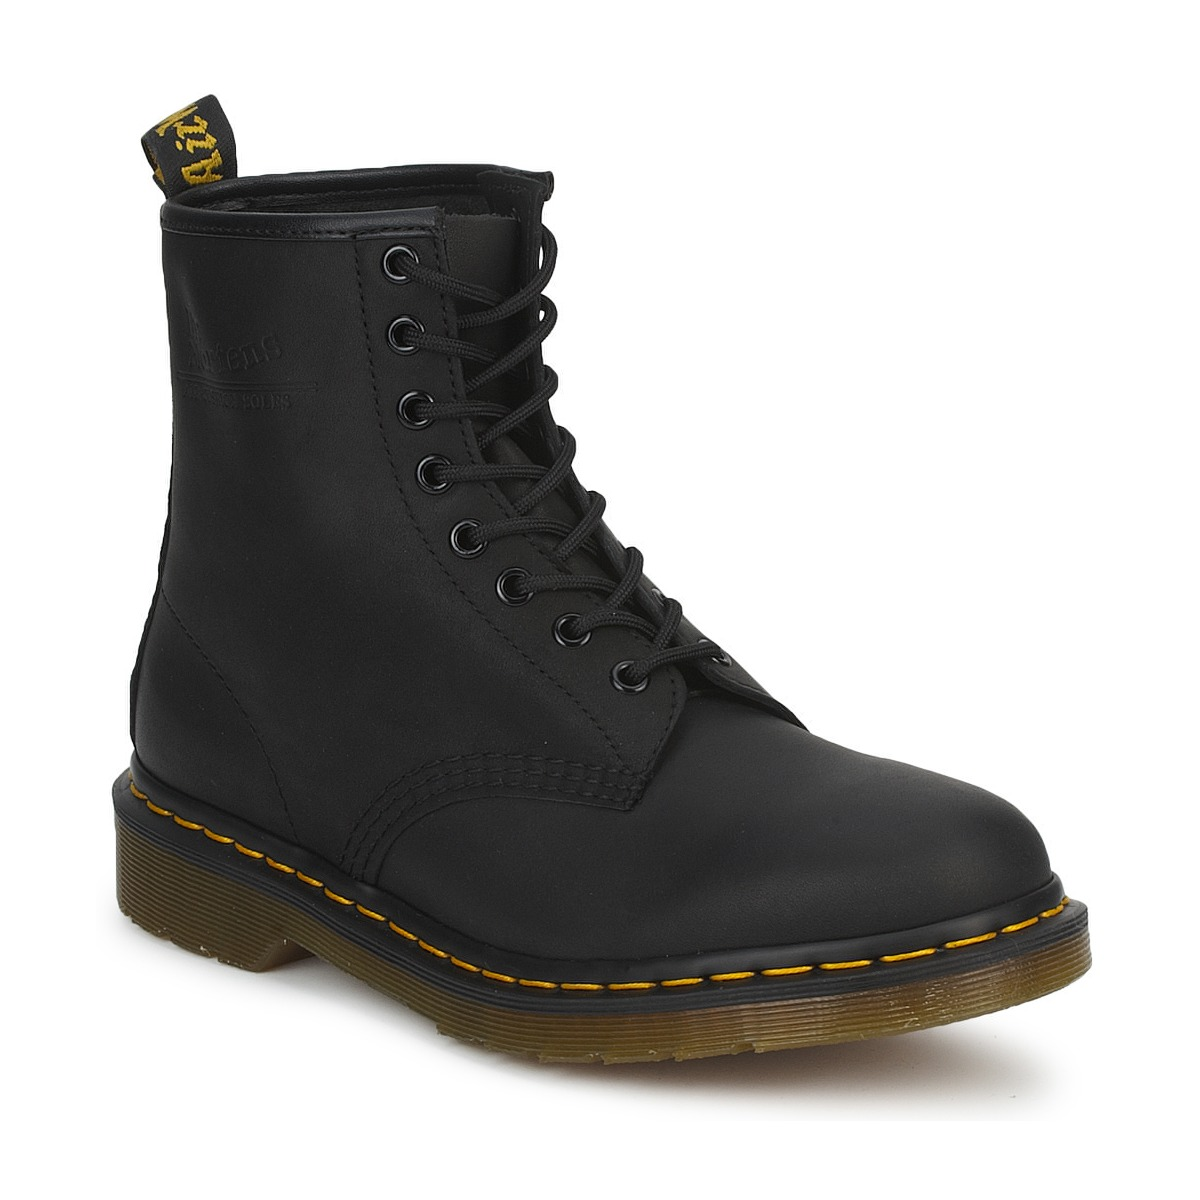 boots dr martens 1460 black greasy achat de chaussures en ligne boutique chaussure pas cher. Black Bedroom Furniture Sets. Home Design Ideas